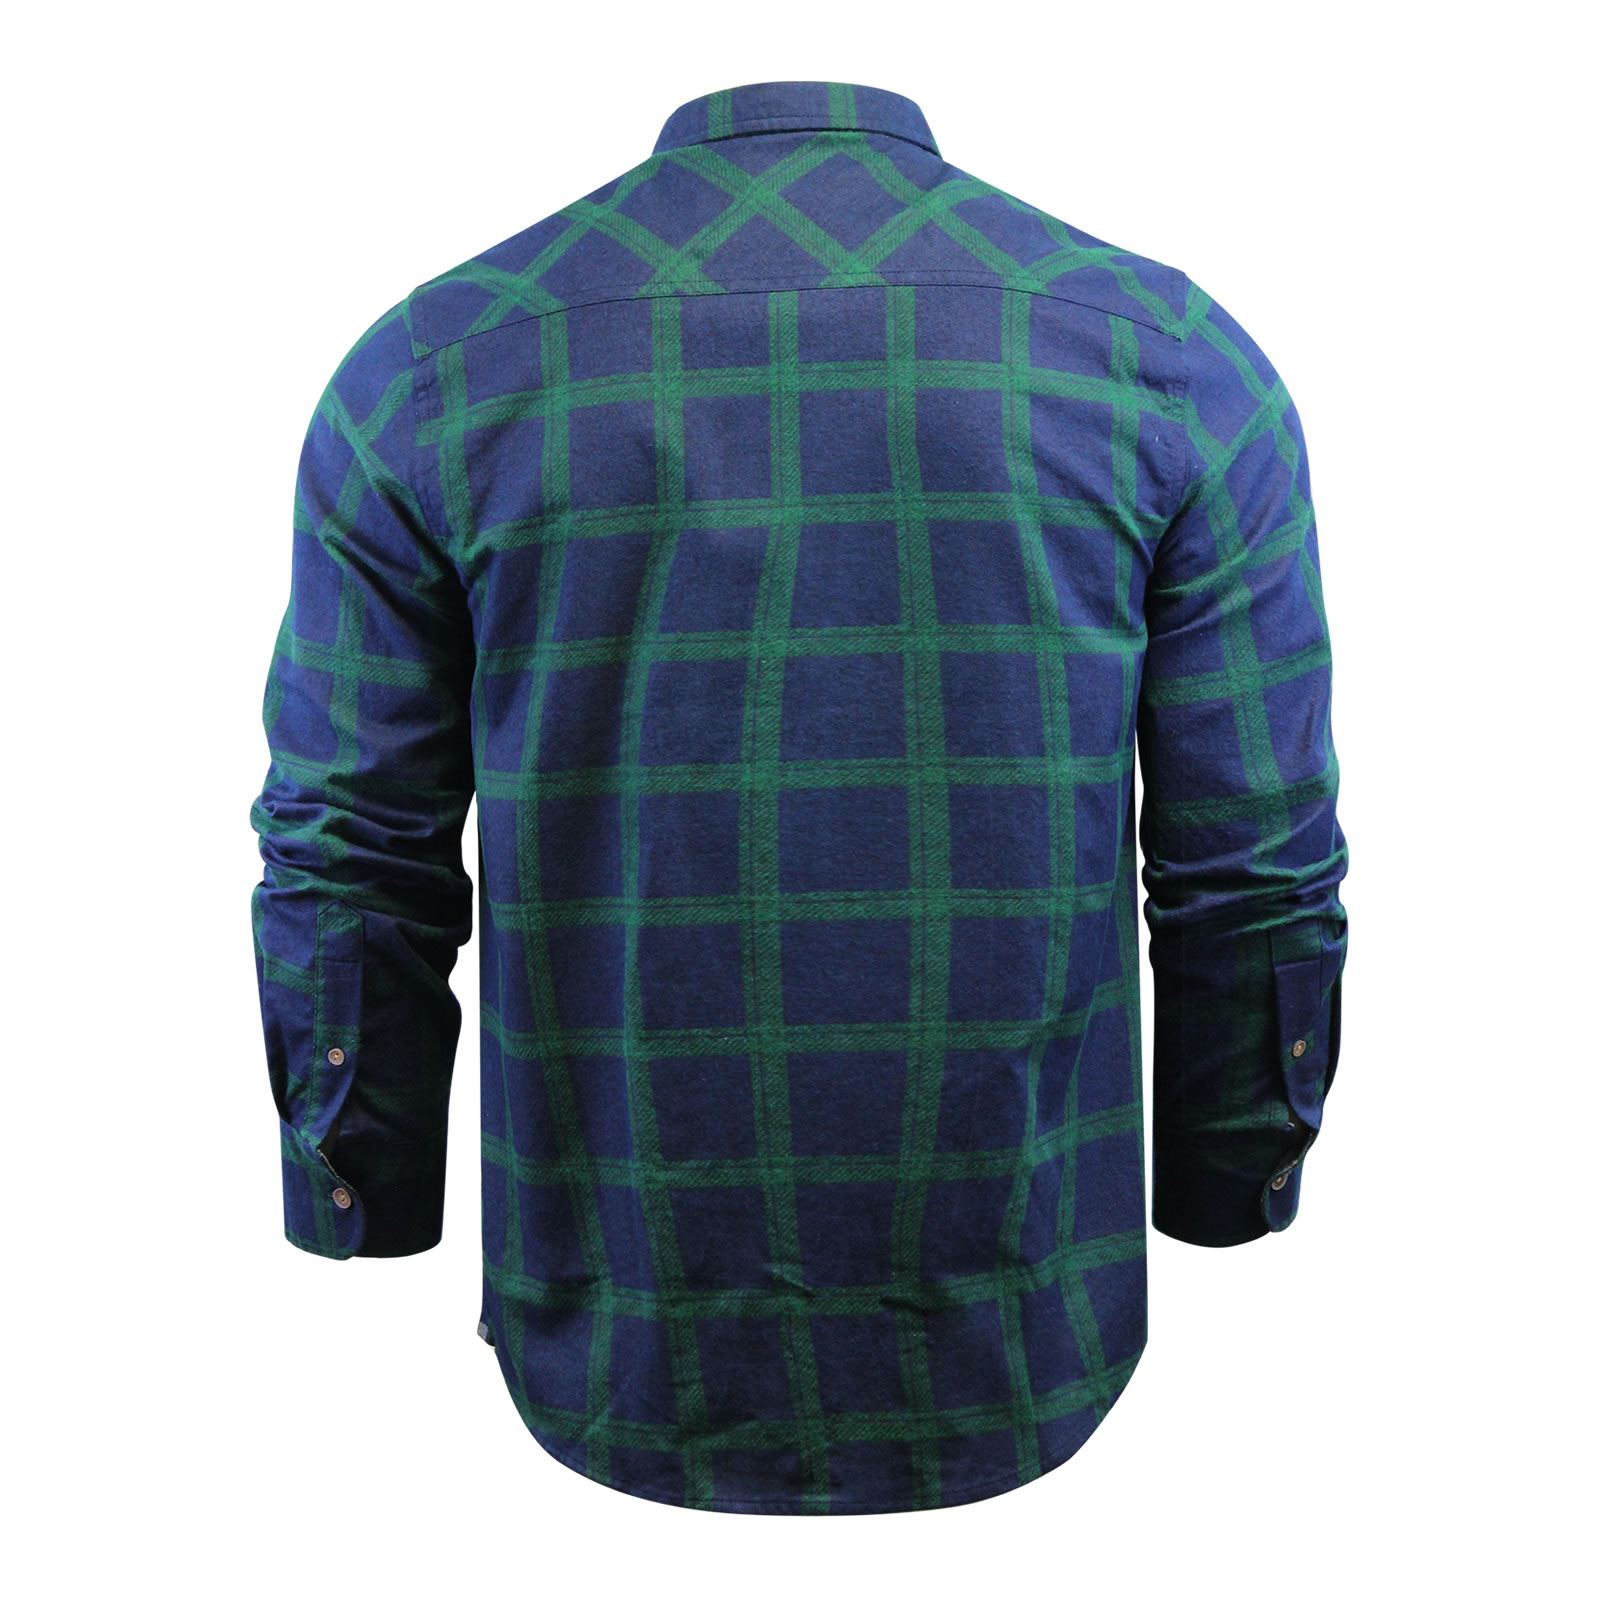 Mens-Check-Shirt-Brave-Soul-Flannel-Brushed-Cotton-Long-Sleeve-Casual-Top thumbnail 101